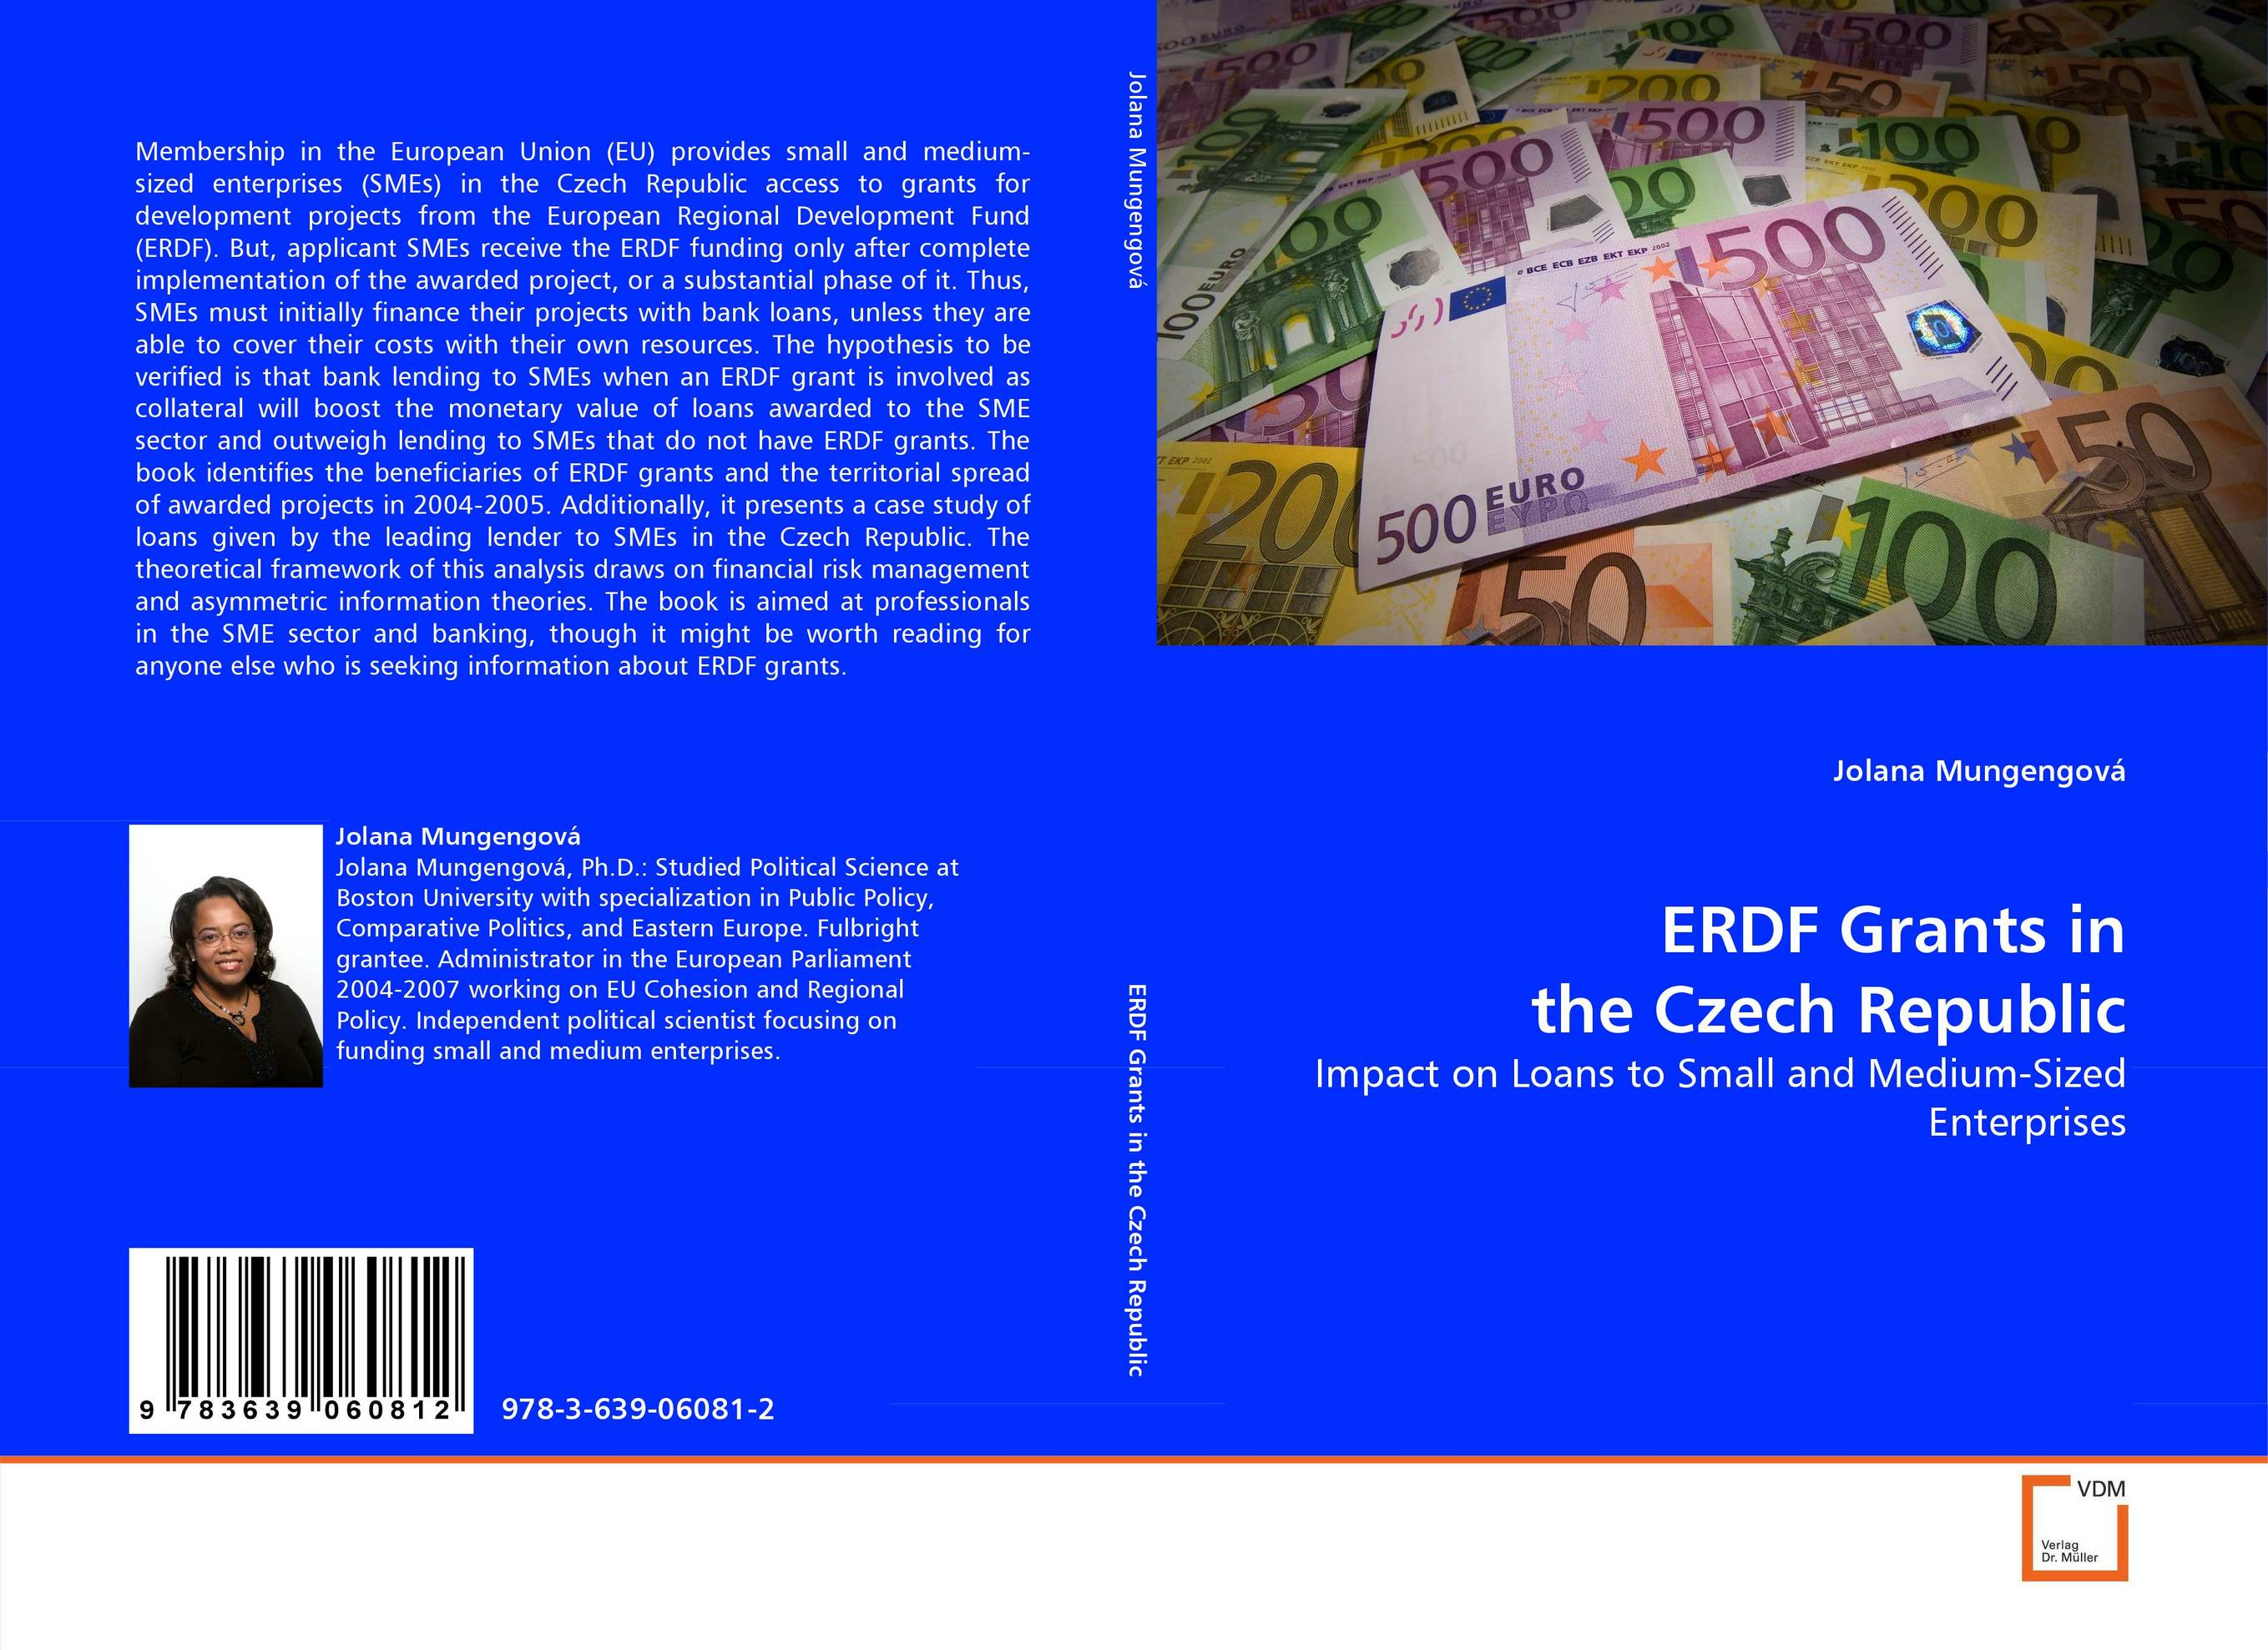 ERDF Grants in the Czech Republic the challenges facing smes in accessing credit loans in ghana